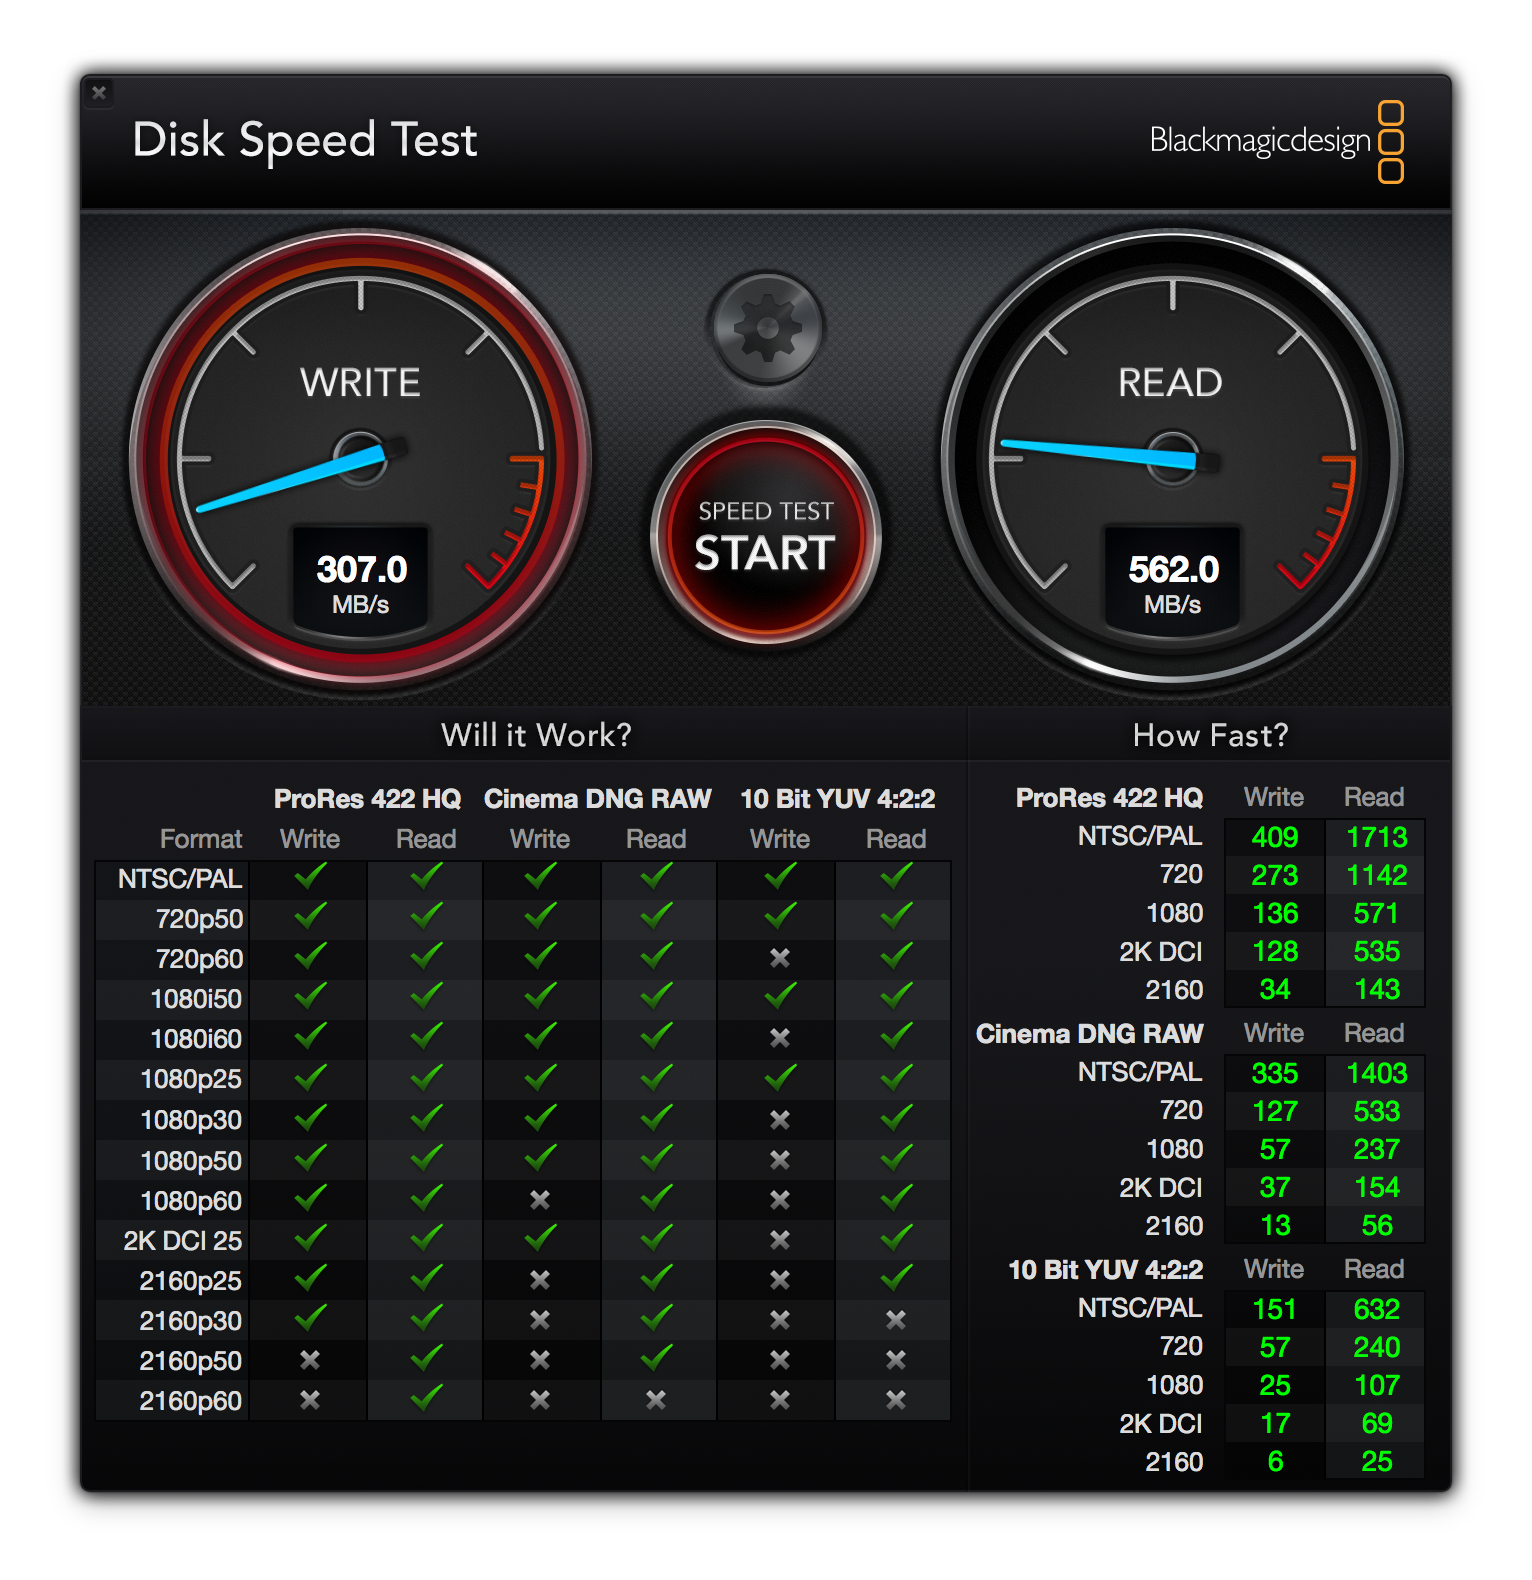 QNAP SSD on